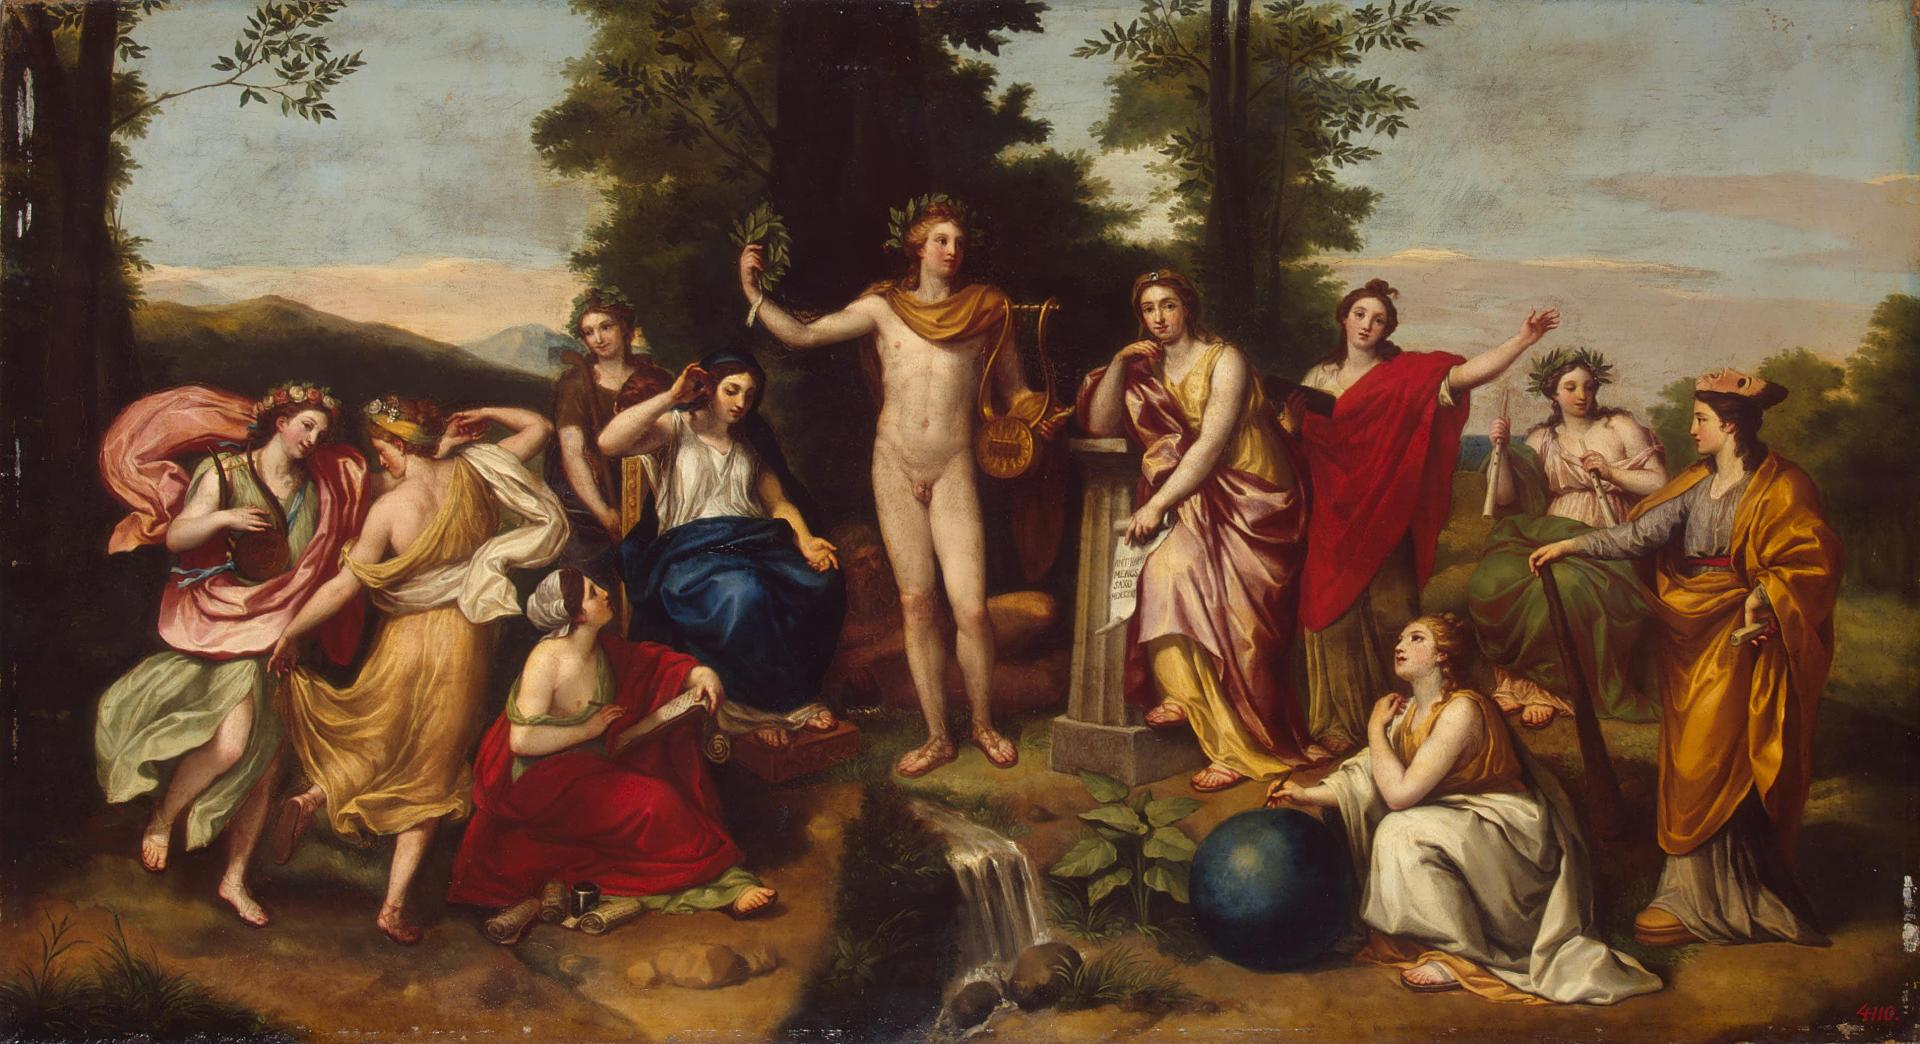 Fig. 3 – Mengs, Anton Raphael. Parnassus. Germany. 1761. Oil on canvas 55 x 101 cm. Inv. no. GE-1327. Crédito: The State Hermitage Museum, St. Petersburg.